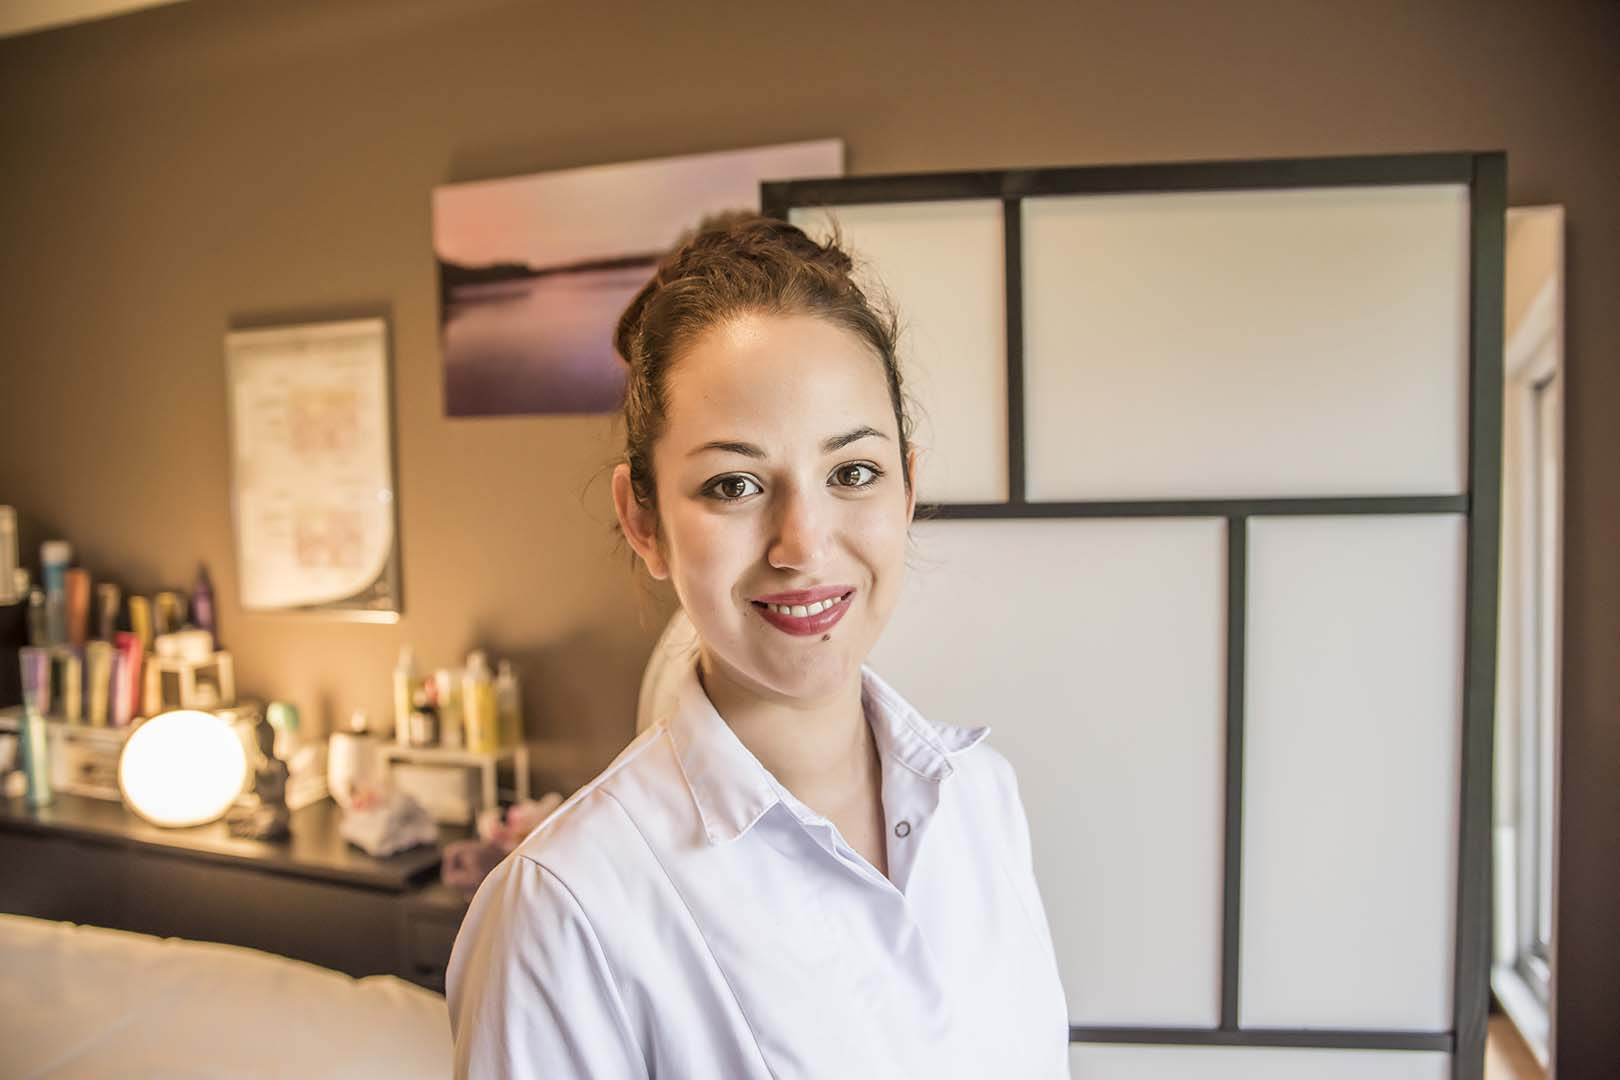 OWNER ANAÏS AESTHETICA CONSULTING, BRUSSELS